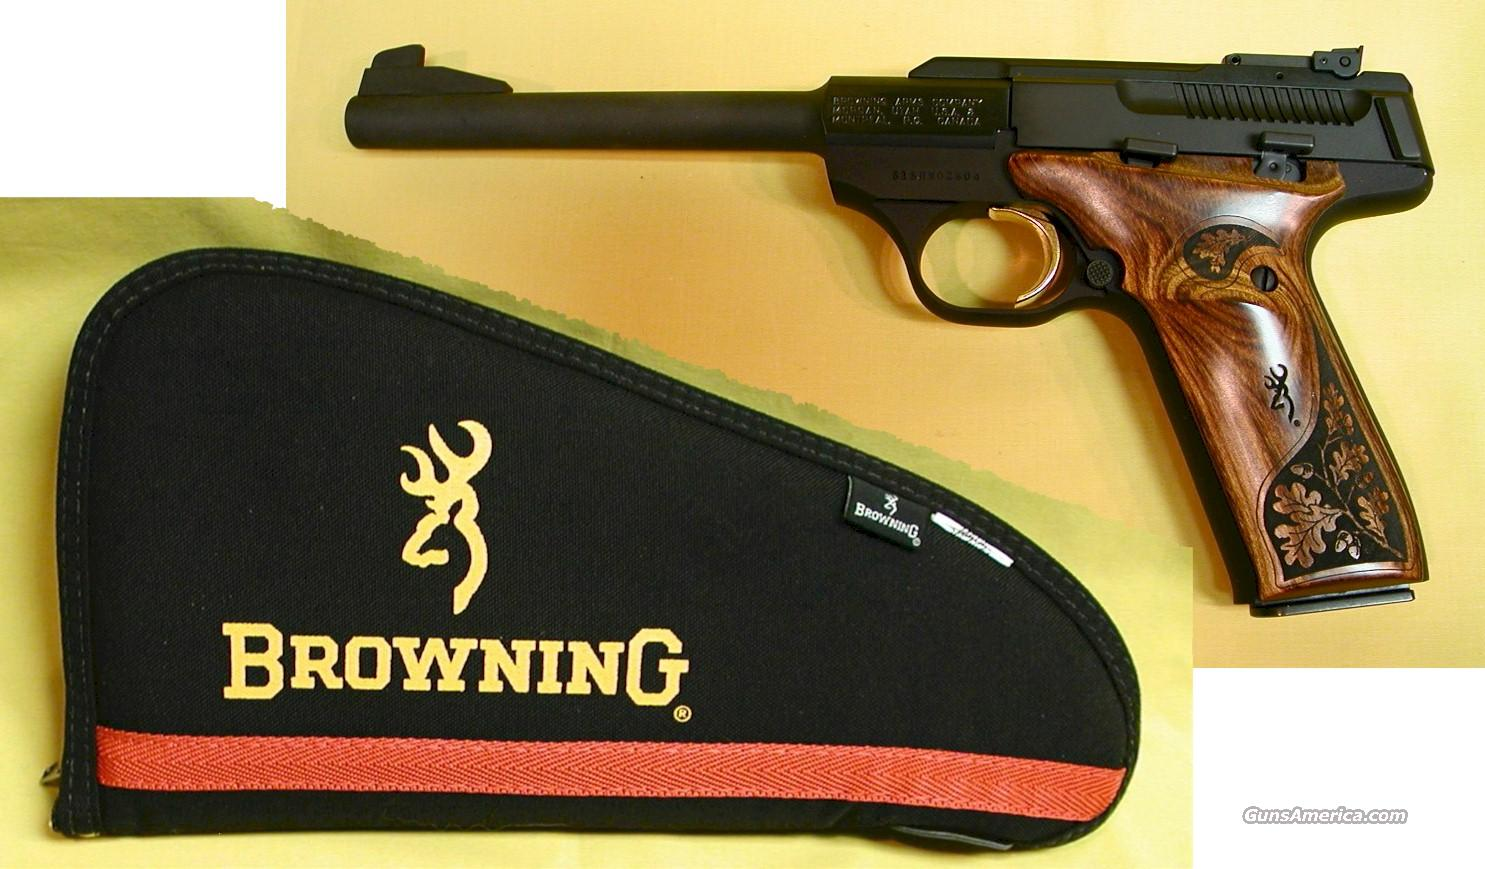 BROWNING LIMITED BUCK MARK CHALLENGER, 22 L.R. CAL.  Guns > Pistols > Browning Pistols > Buckmark